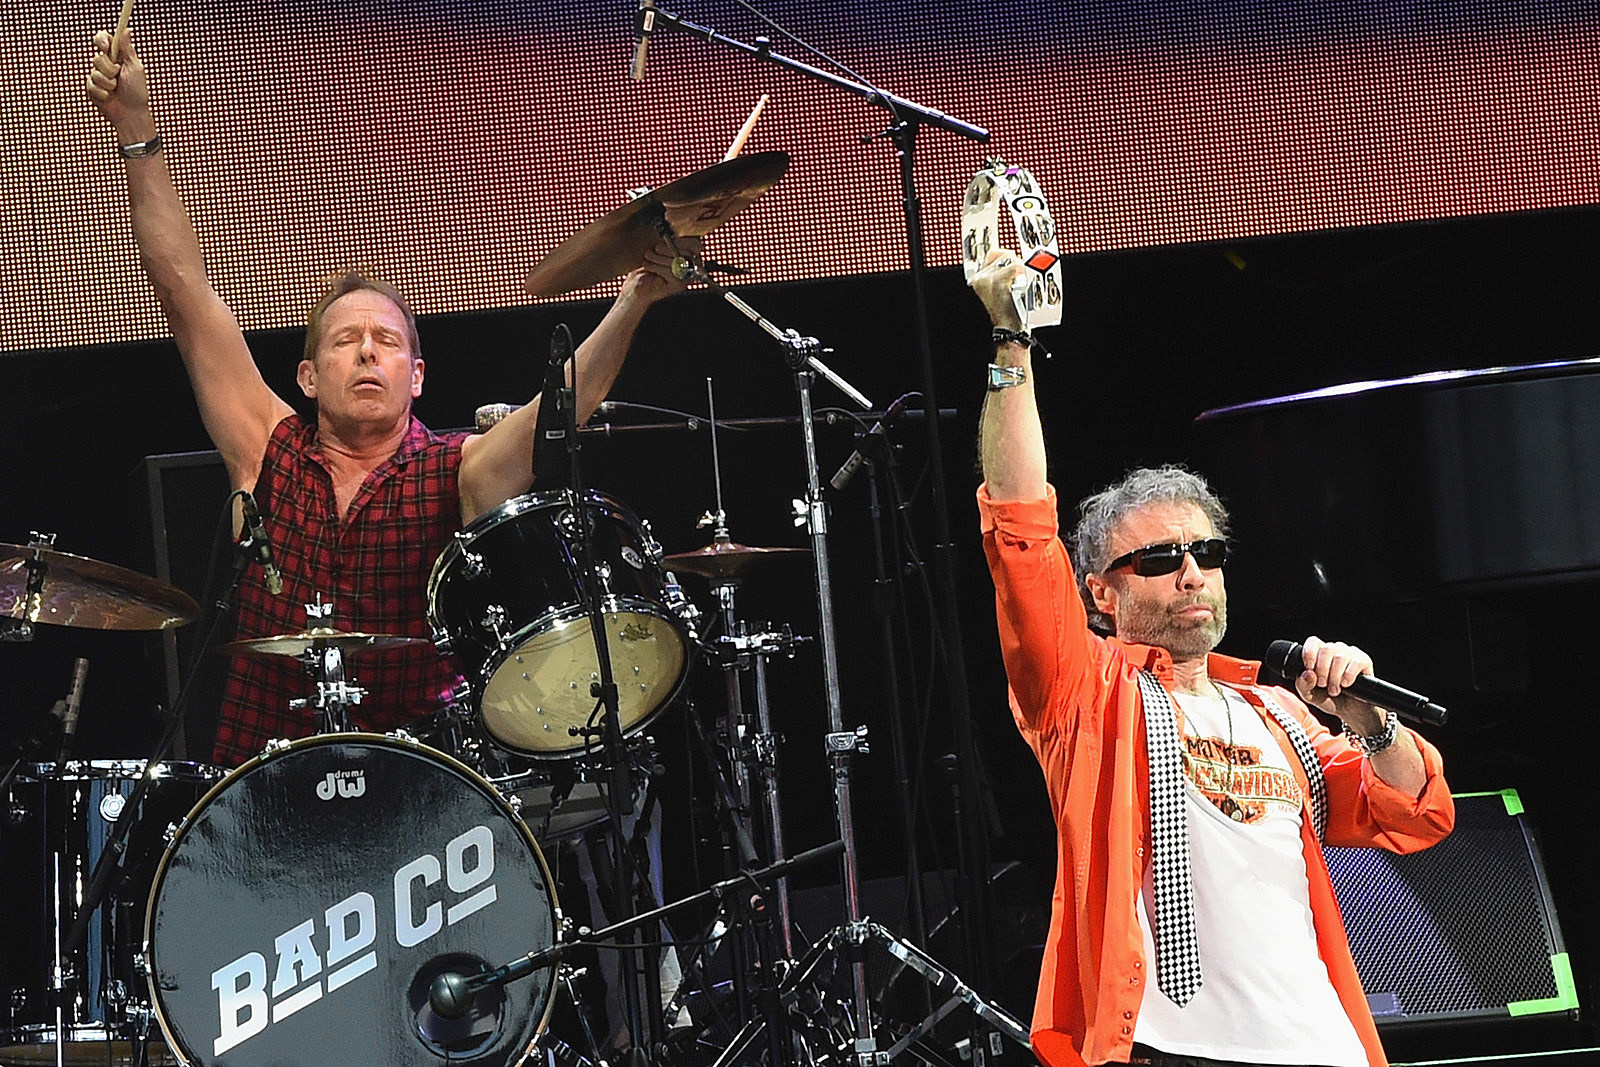 Paul Rodgers Teases New Album From Bad Company